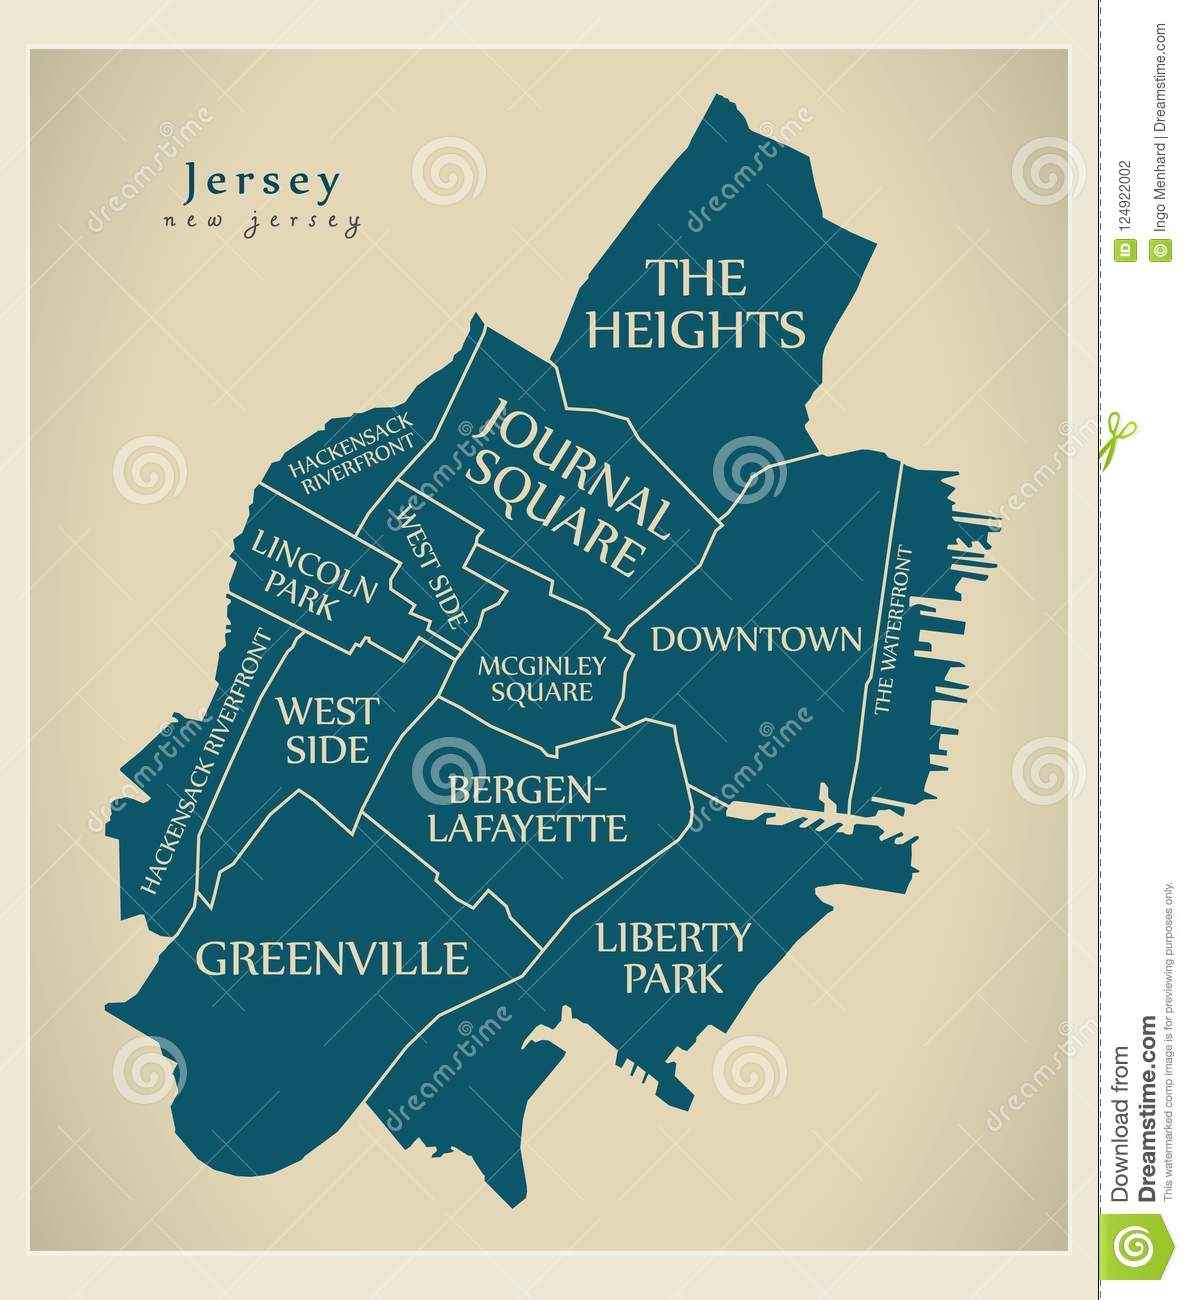 modern city map jersey new jersey city of the usa with neighbo